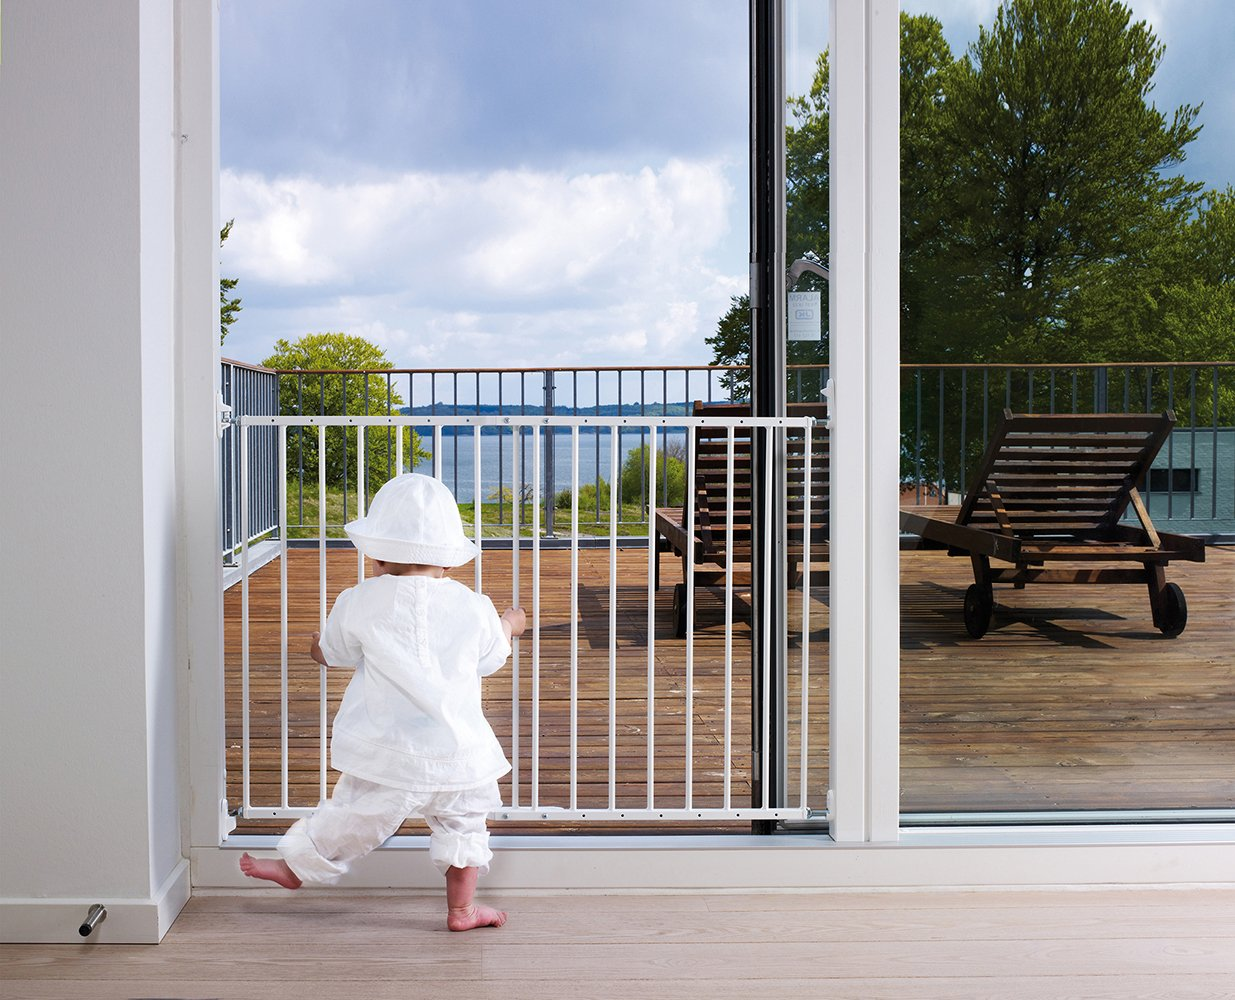 BabyDan Multidan Extending Metal Safety Gate, White  Screw fitted extending metal safety gate meeting latest EN1930:2011 safety standard The gate is fully adjustable and will fit a wide variety of openings  62.5cm - 106.8cm Simple to build and comes complete with all fixings 3